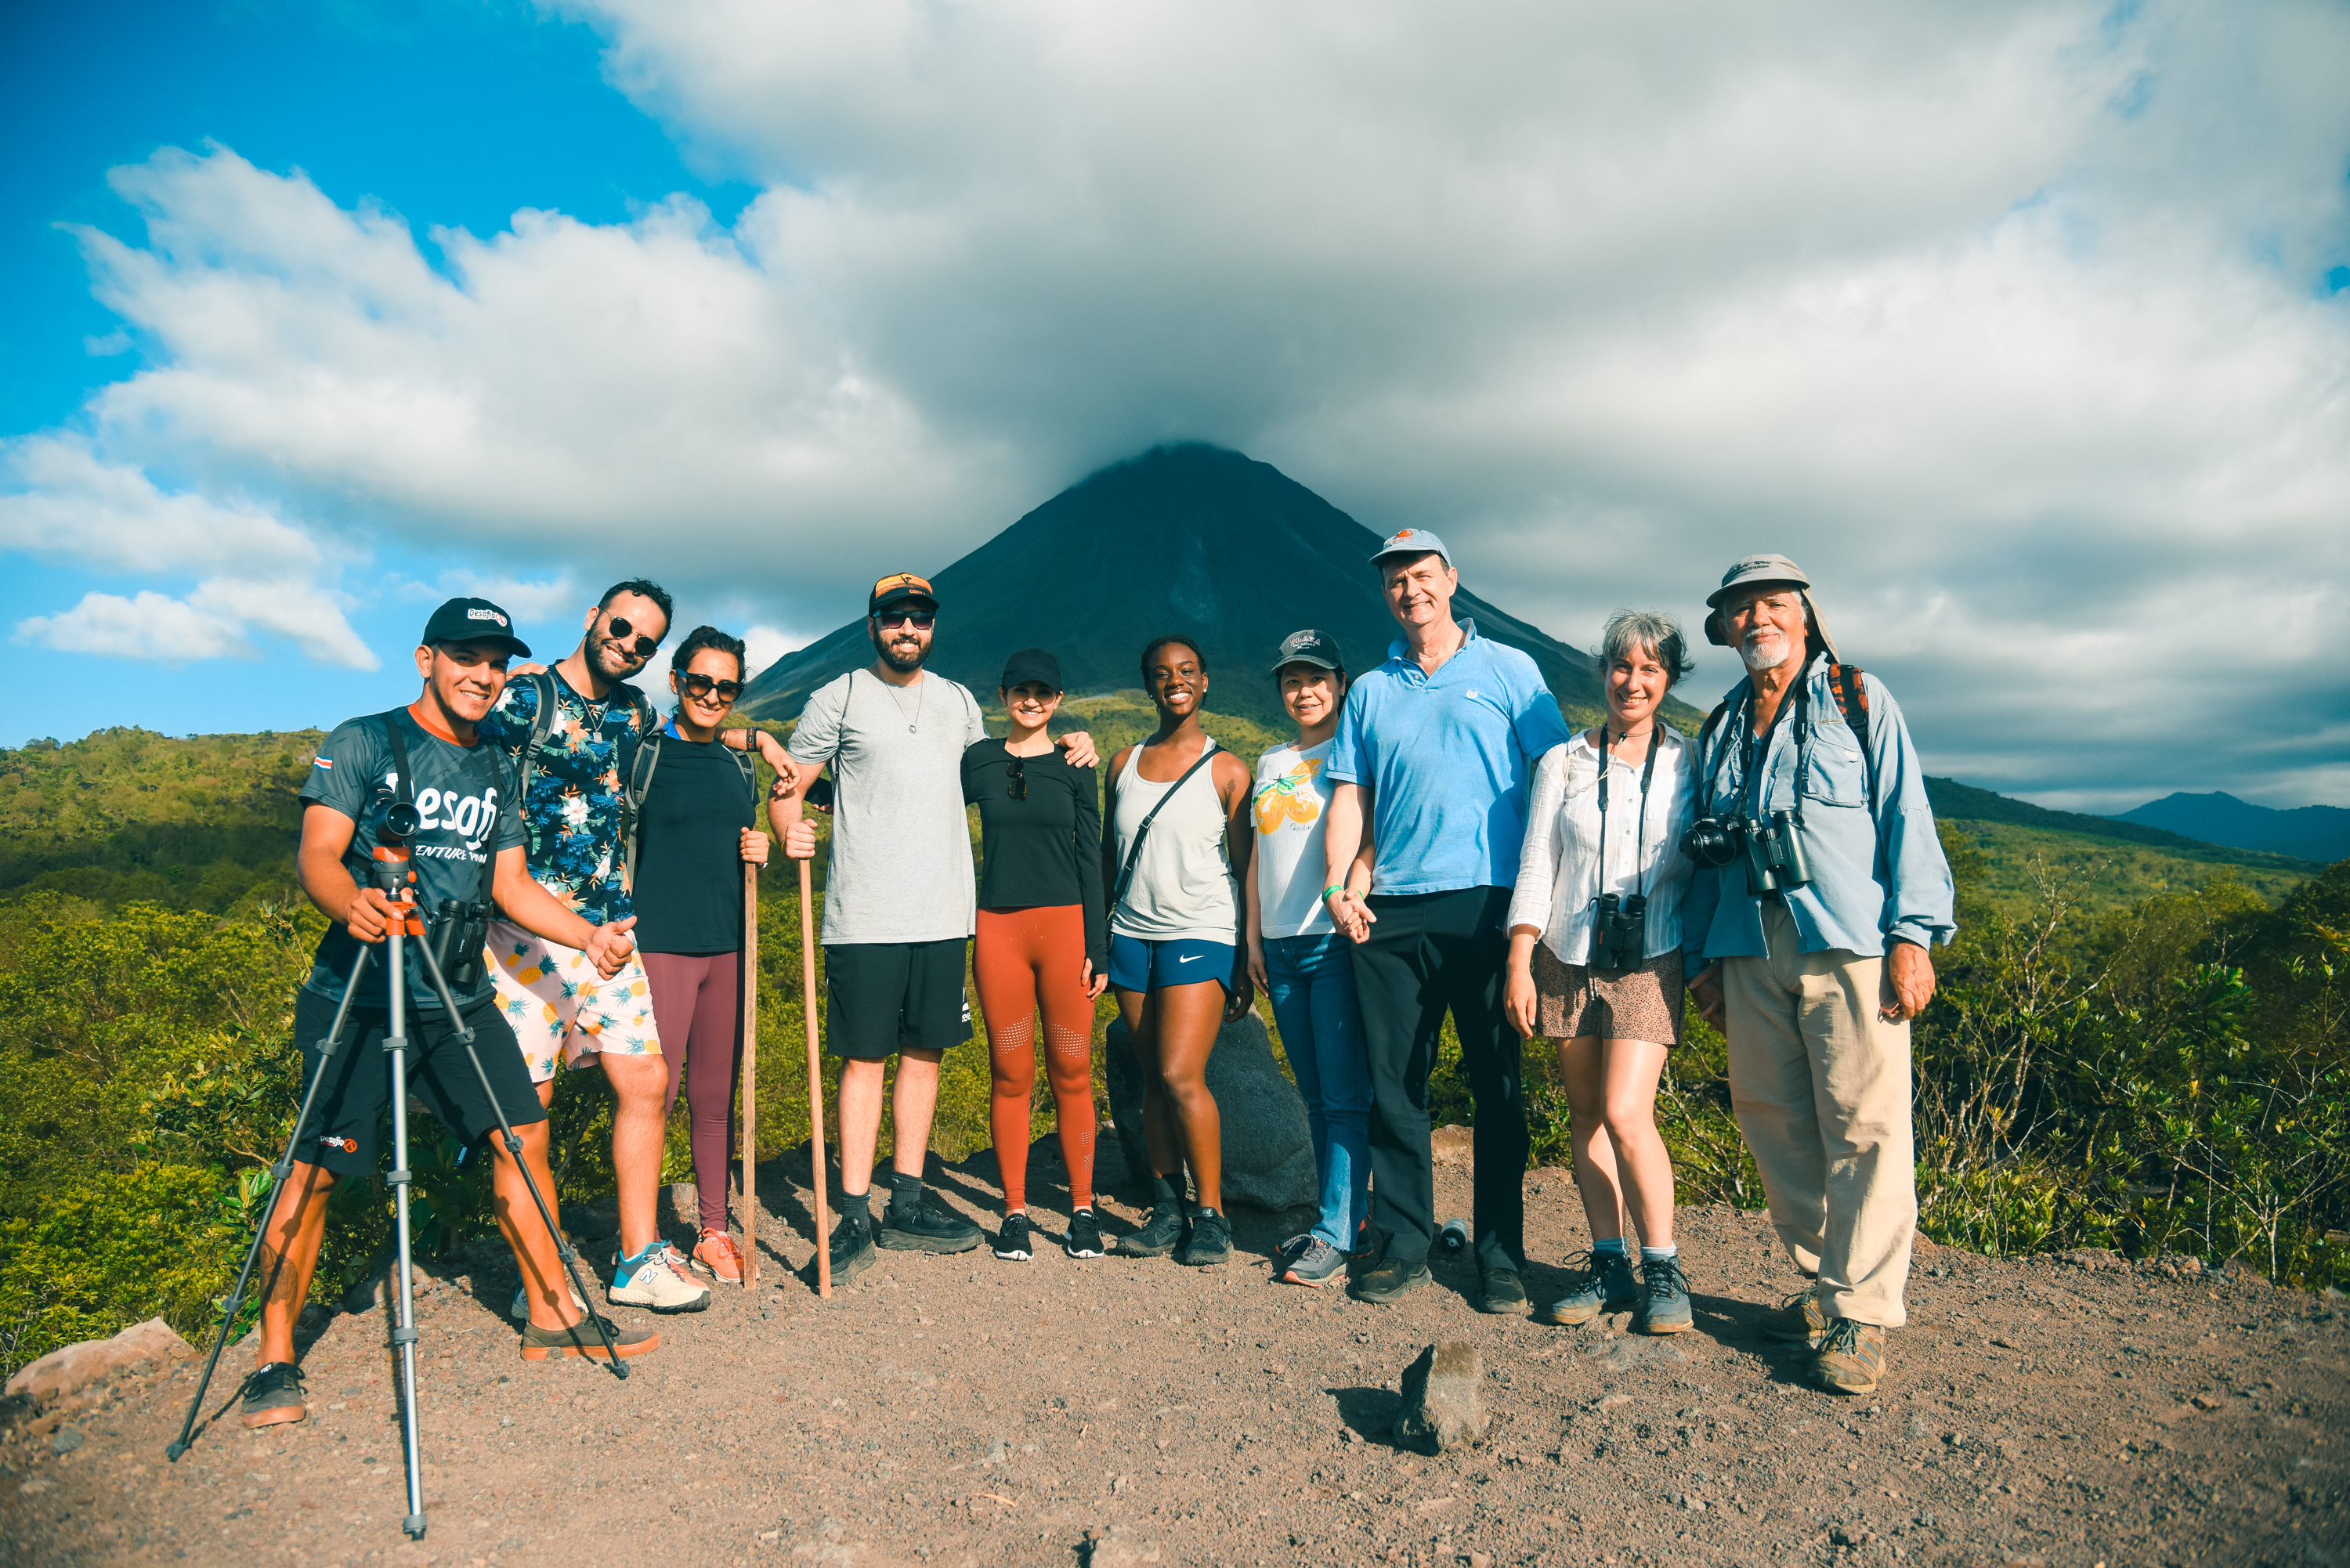 Experience the best view to Arenal Volcano with the pioneers of the adventure in Costa Rica!